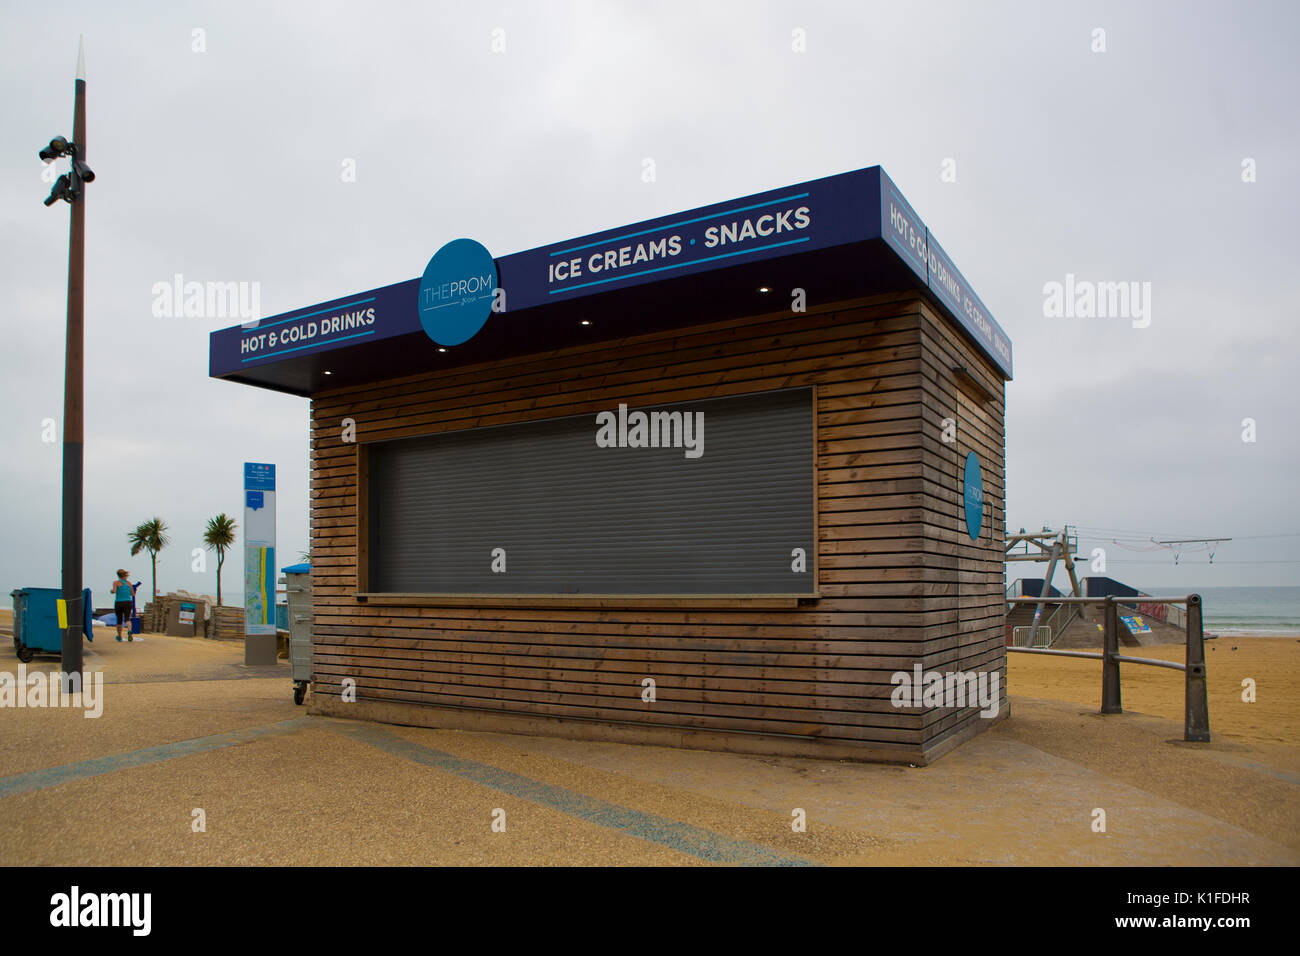 BOURNEMOUTH, UK - AUGUST 22, 2017: The Prom Kiosk on Bournemouth Seafront Stock Photo